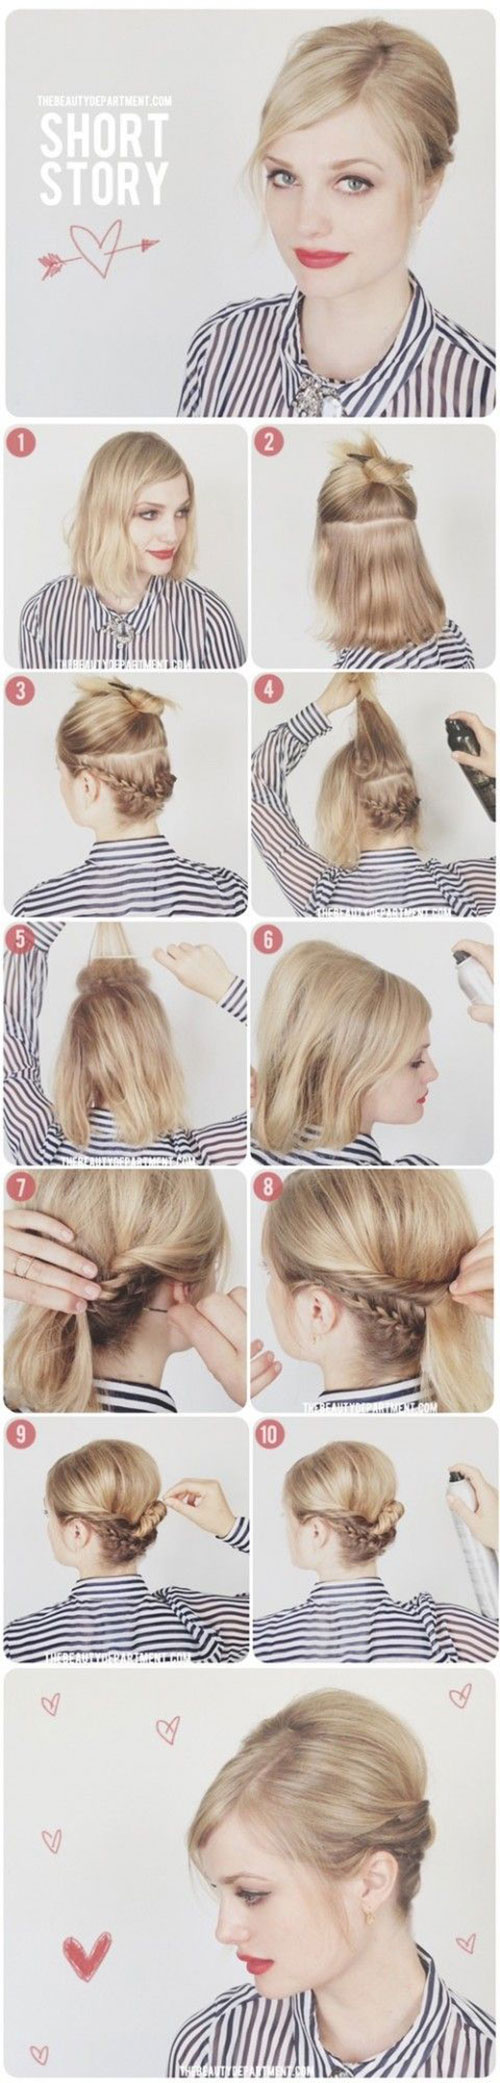 15-Step-By-Step-Summer-Hairstyle-Tutorials-For-Beginners-Learners-2015-8